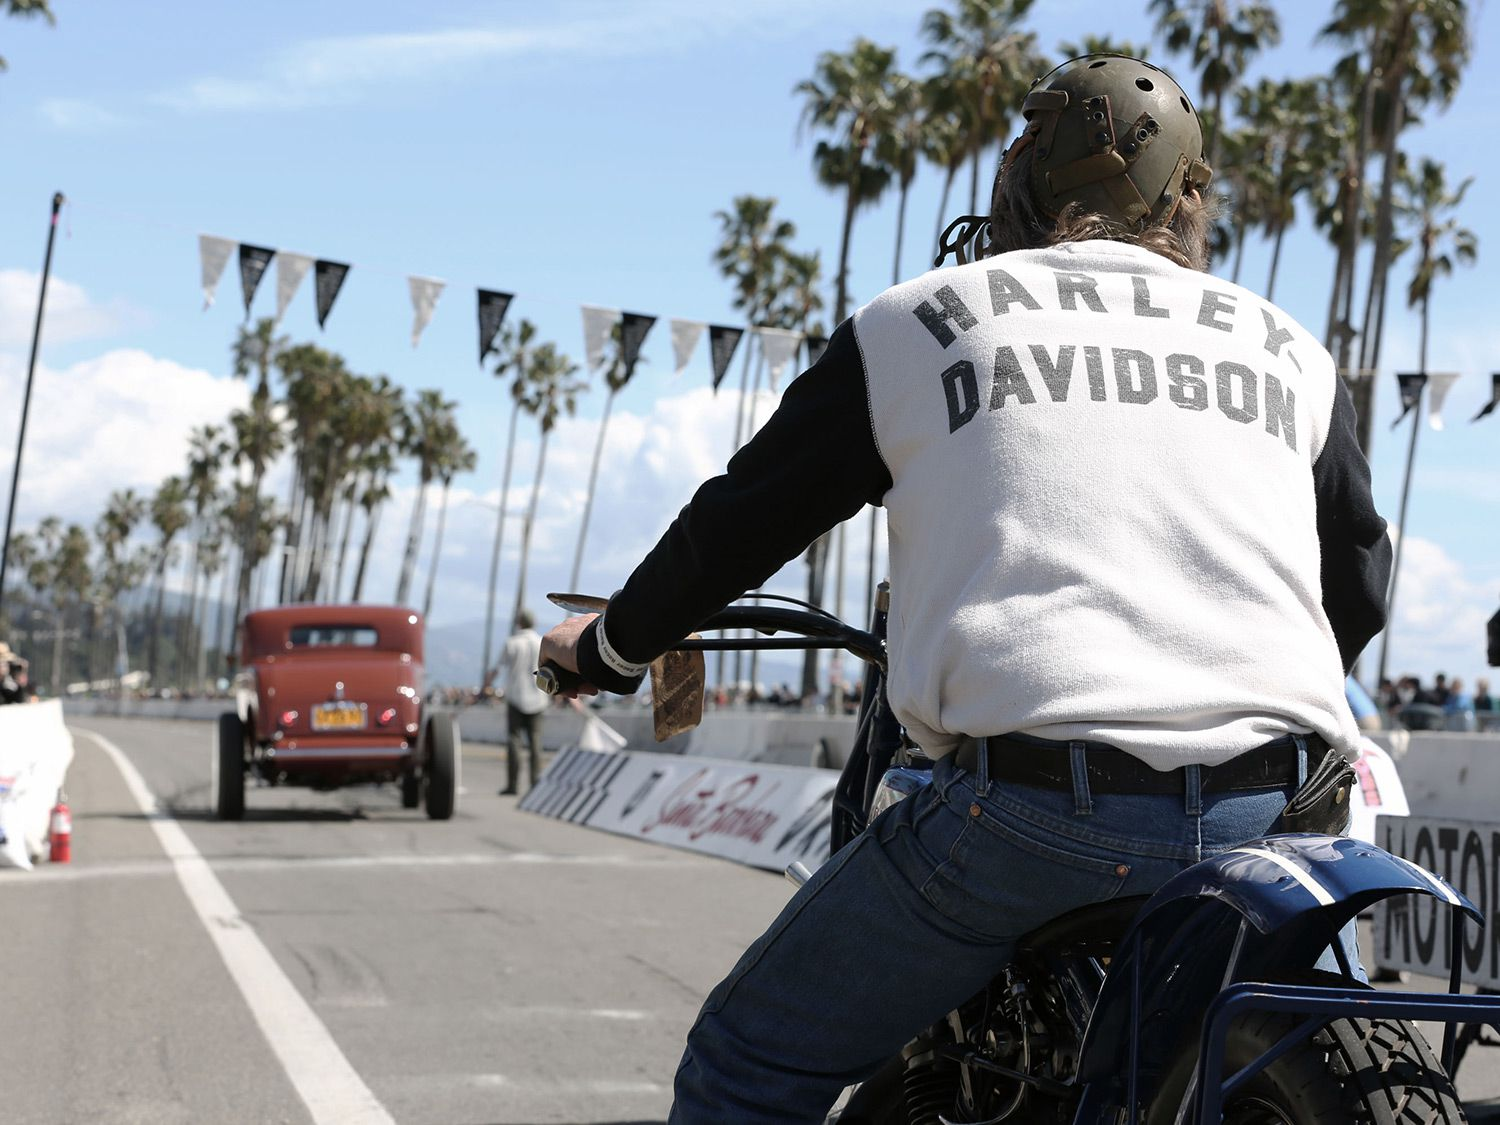 Harley-Davidson was the main sponsor of this year's event.